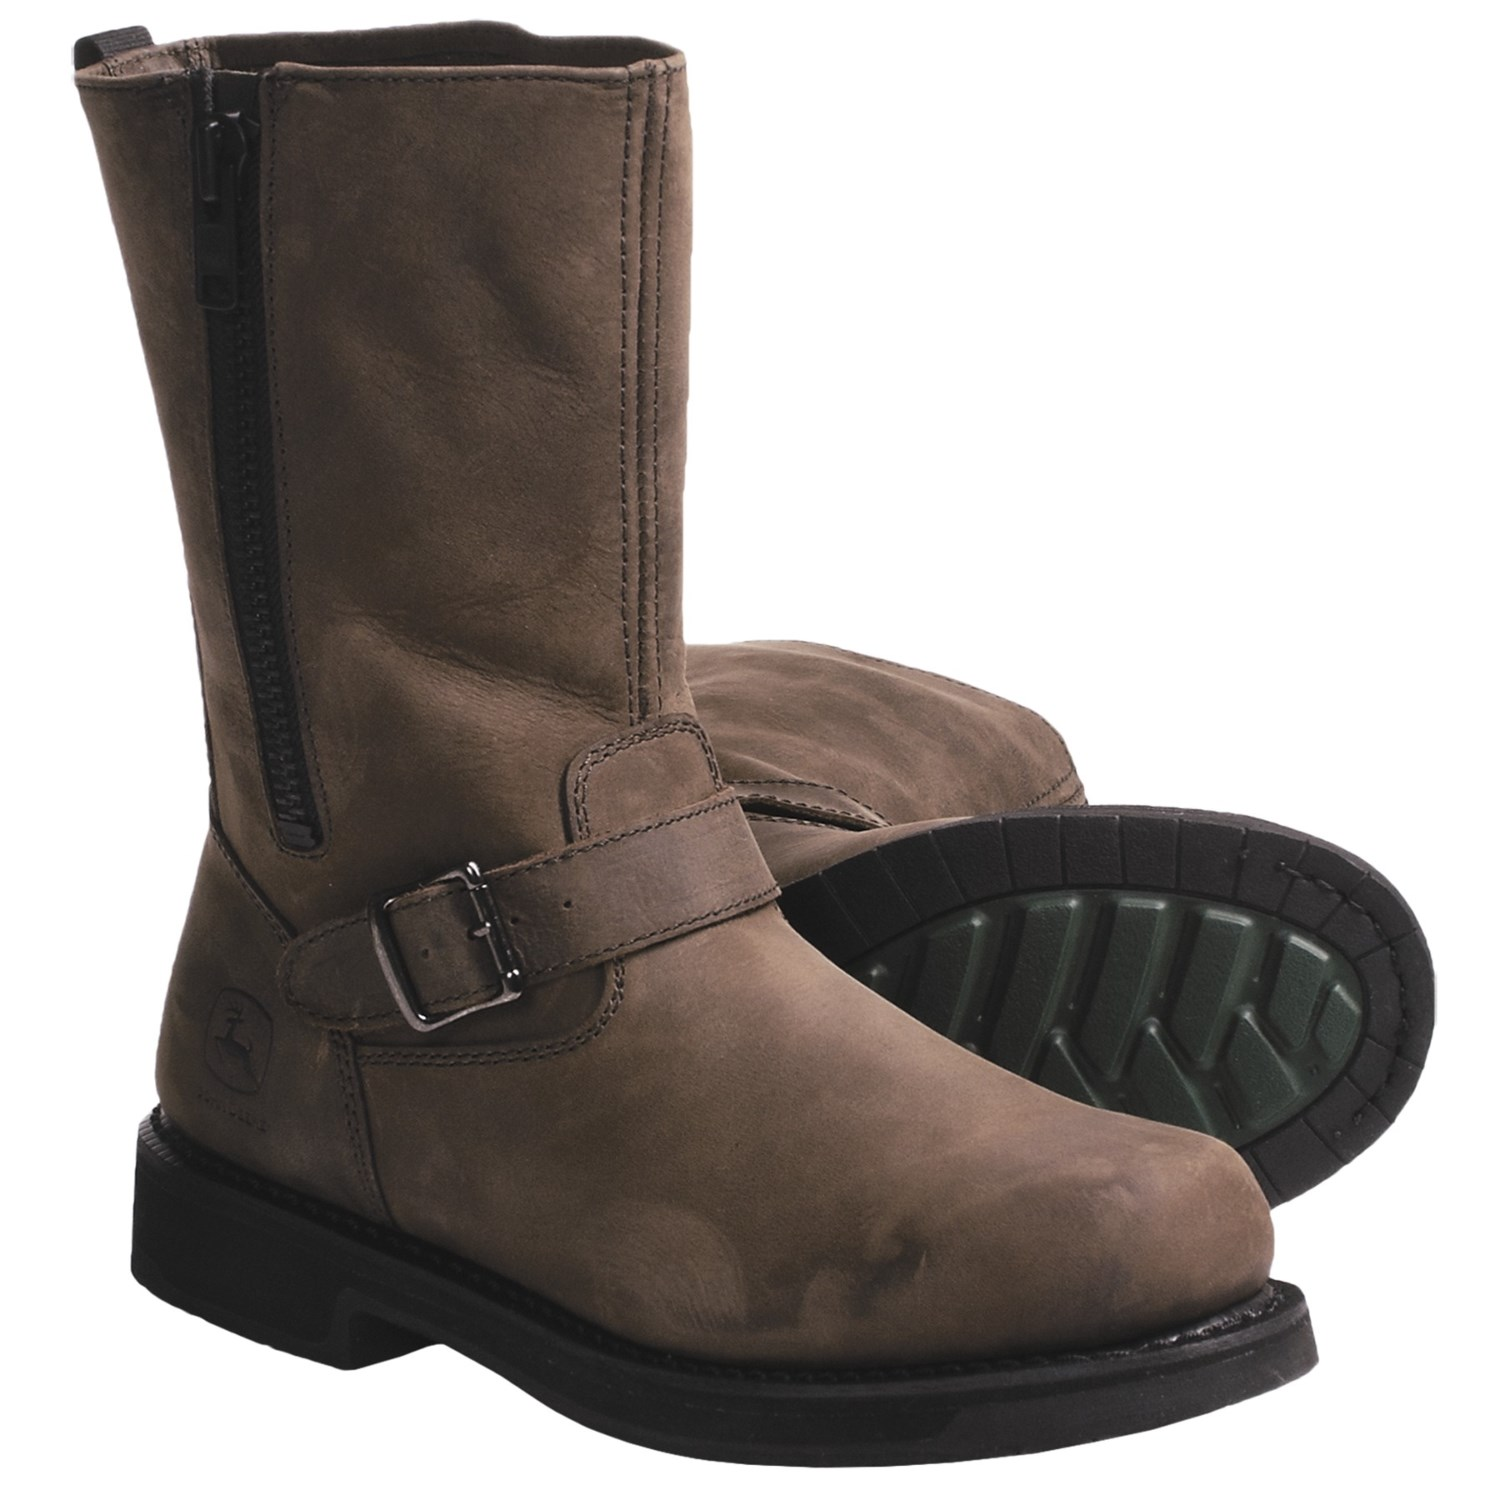 ankle boots men zipper brown leather size 11